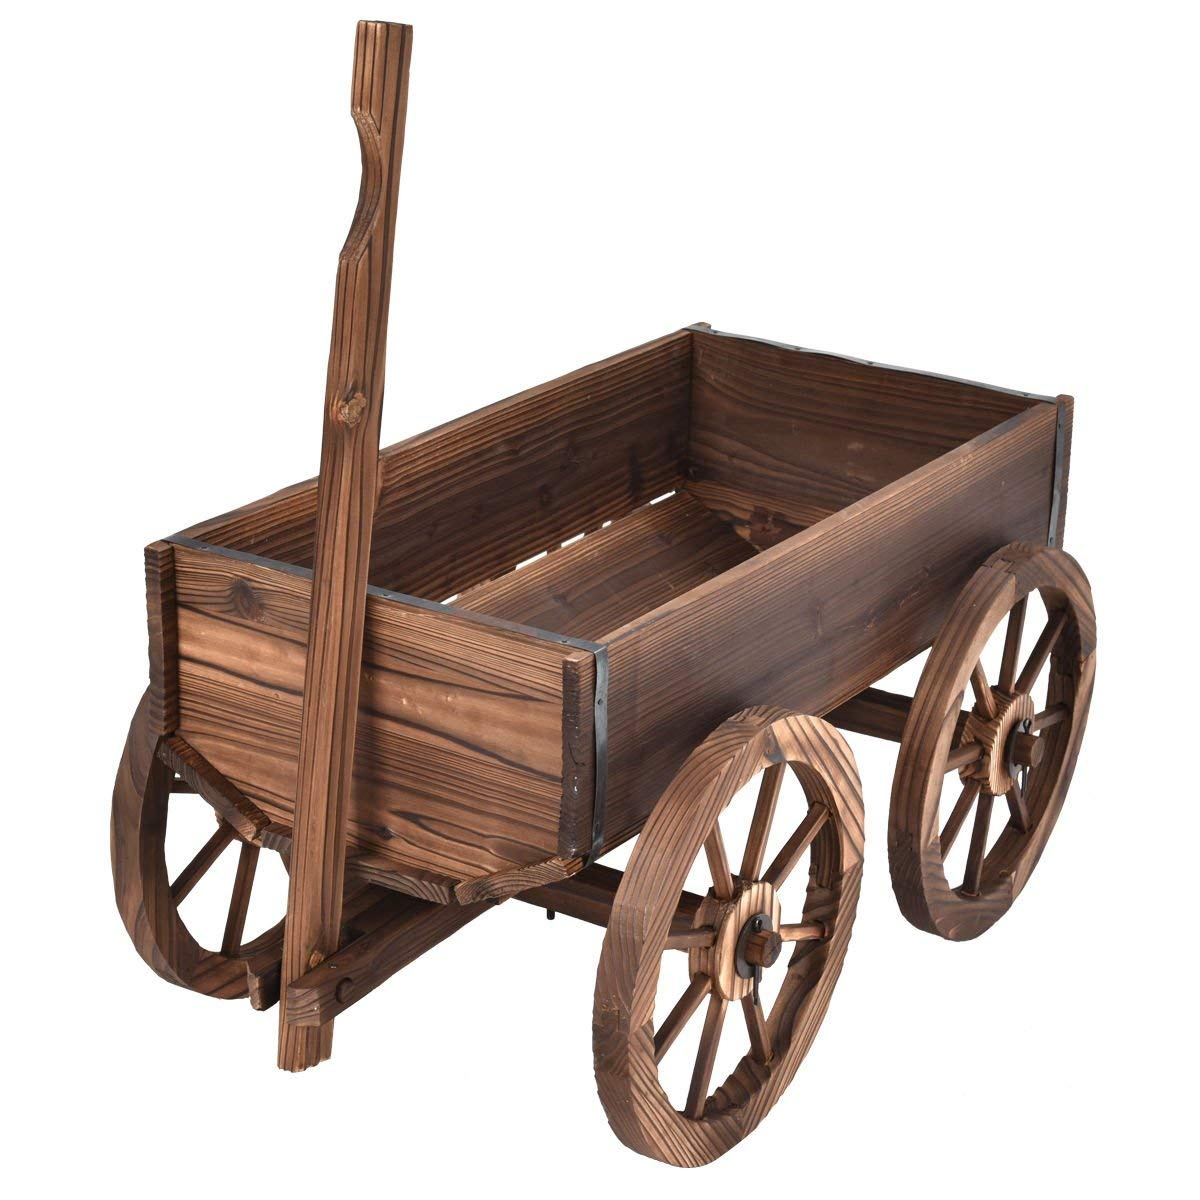 billionese Planter Pot Stand Wood Wagon Flower With Wheels Home Garden Outdoor Decor